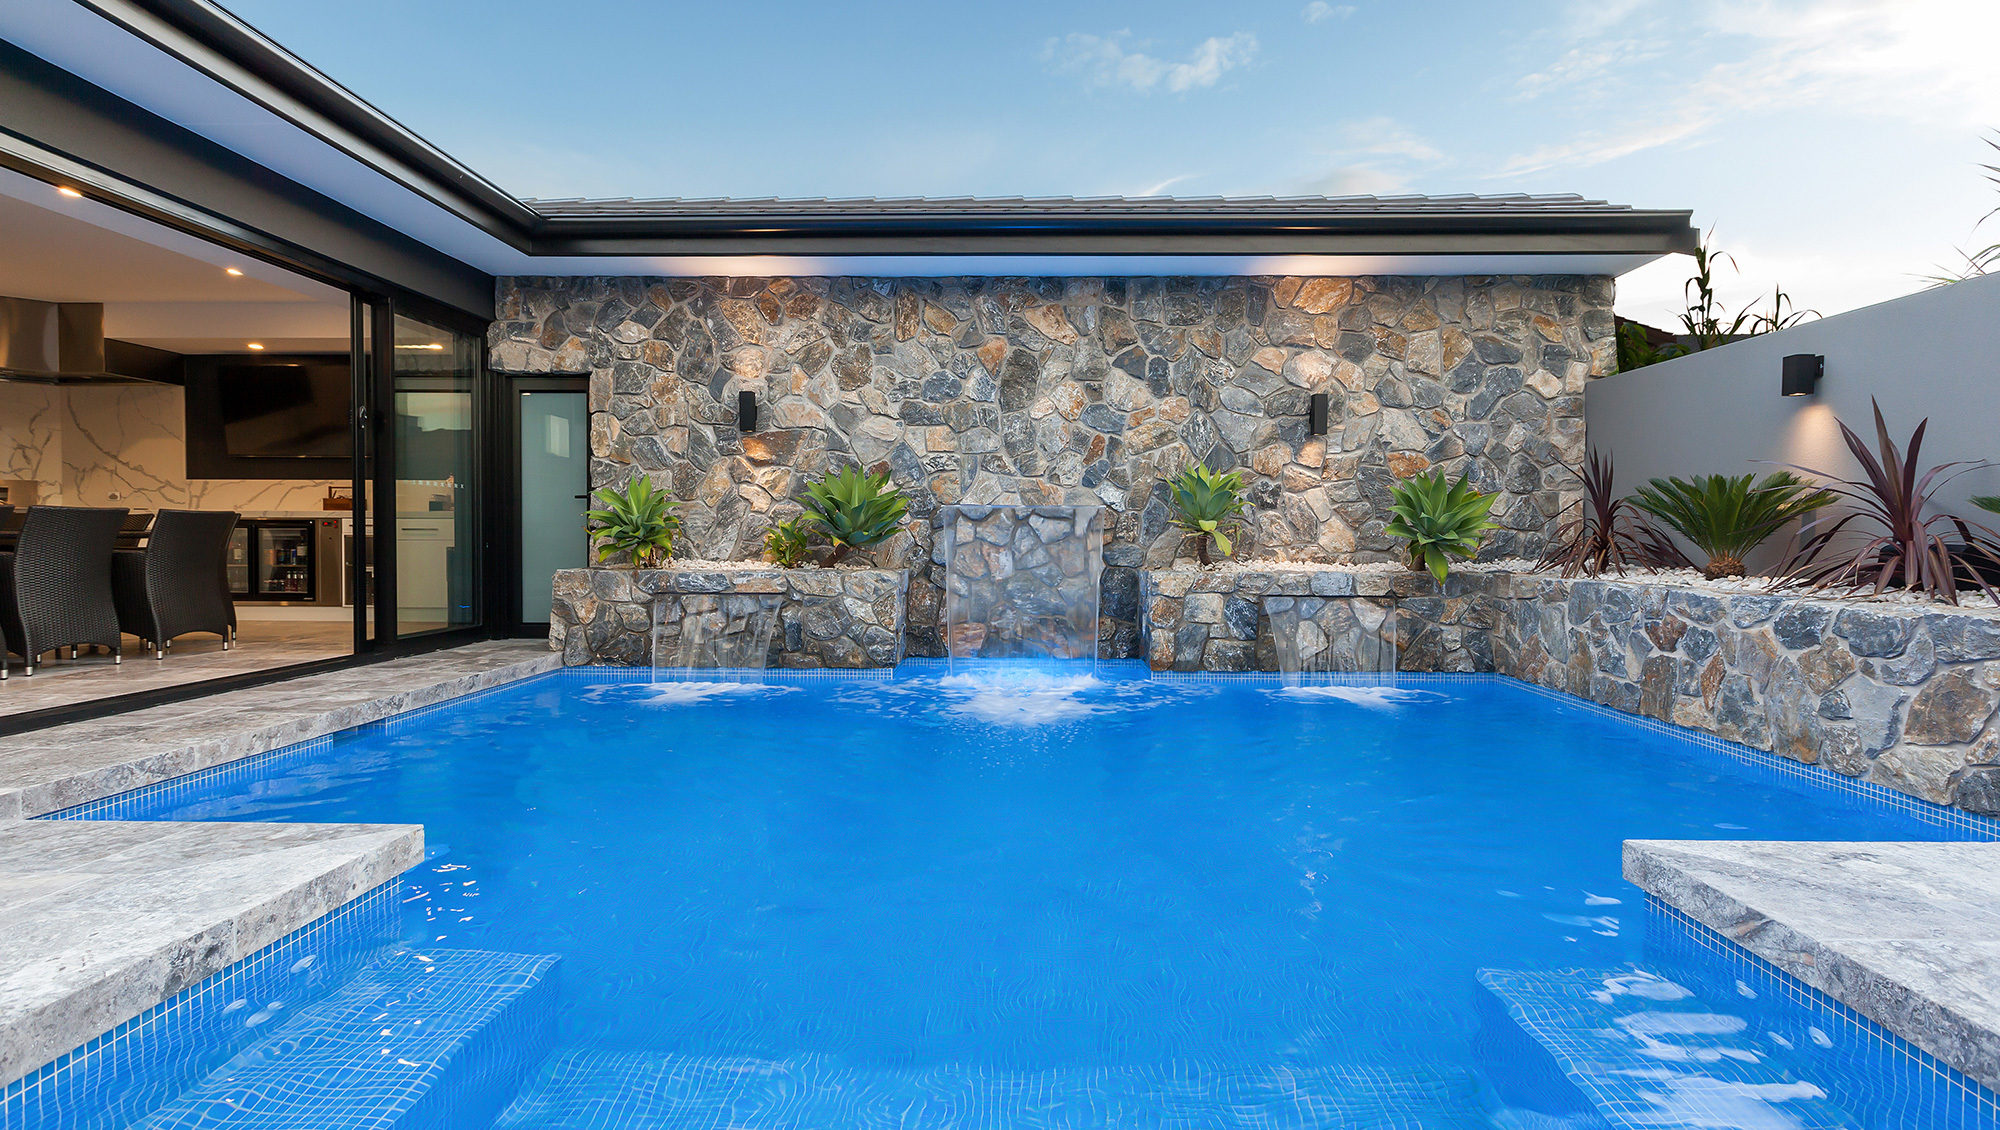 Welcome to design pools design pools for Pool design aufkleber